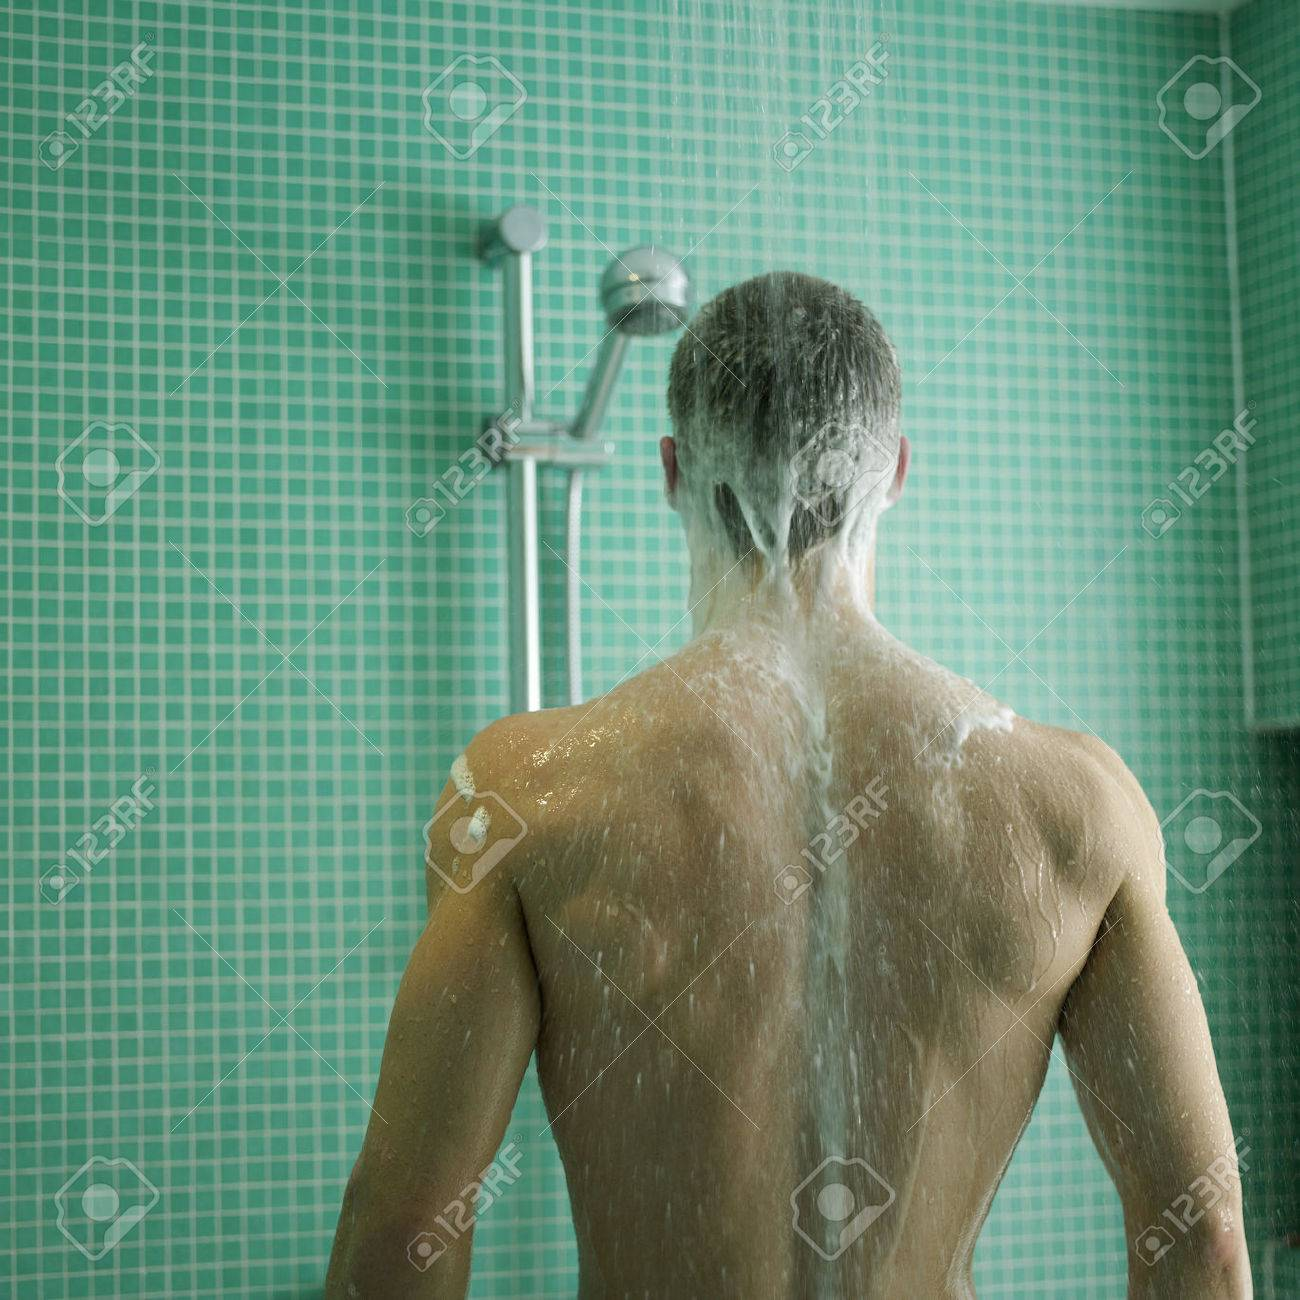 Man Enjoying His Shower Time Stock Photo, Picture And Royalty Free ...